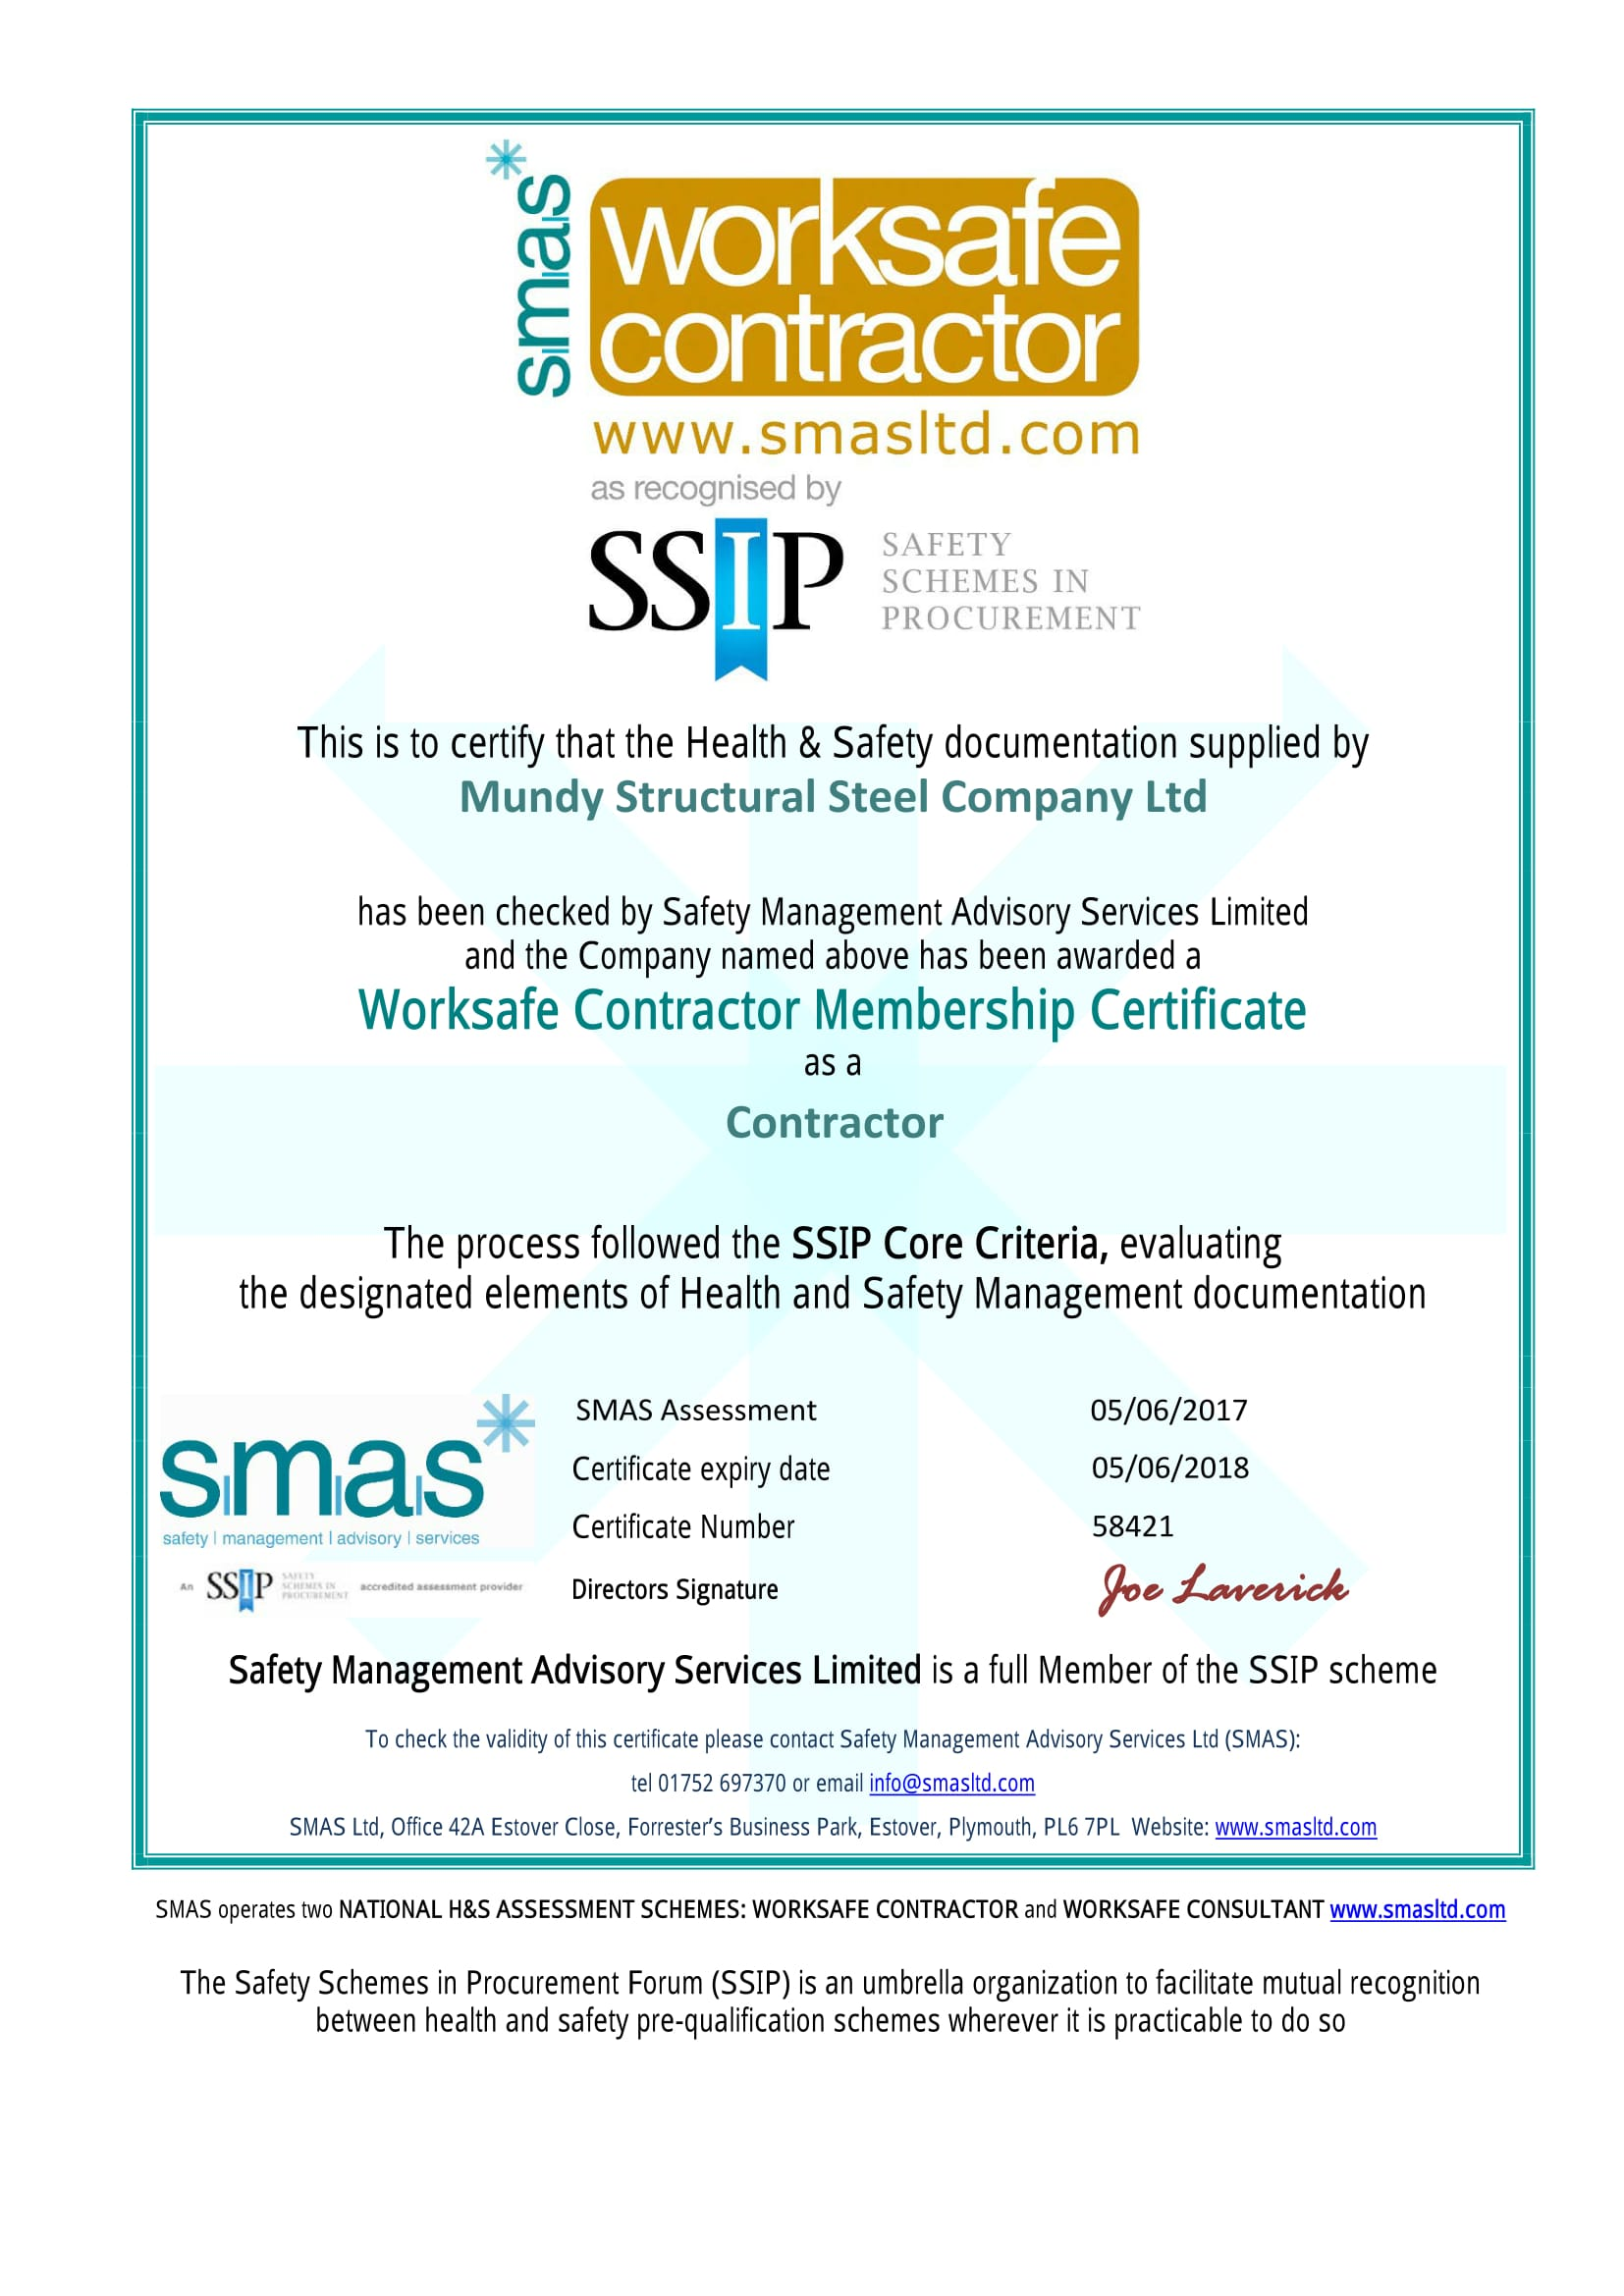 an image of SMAS certification